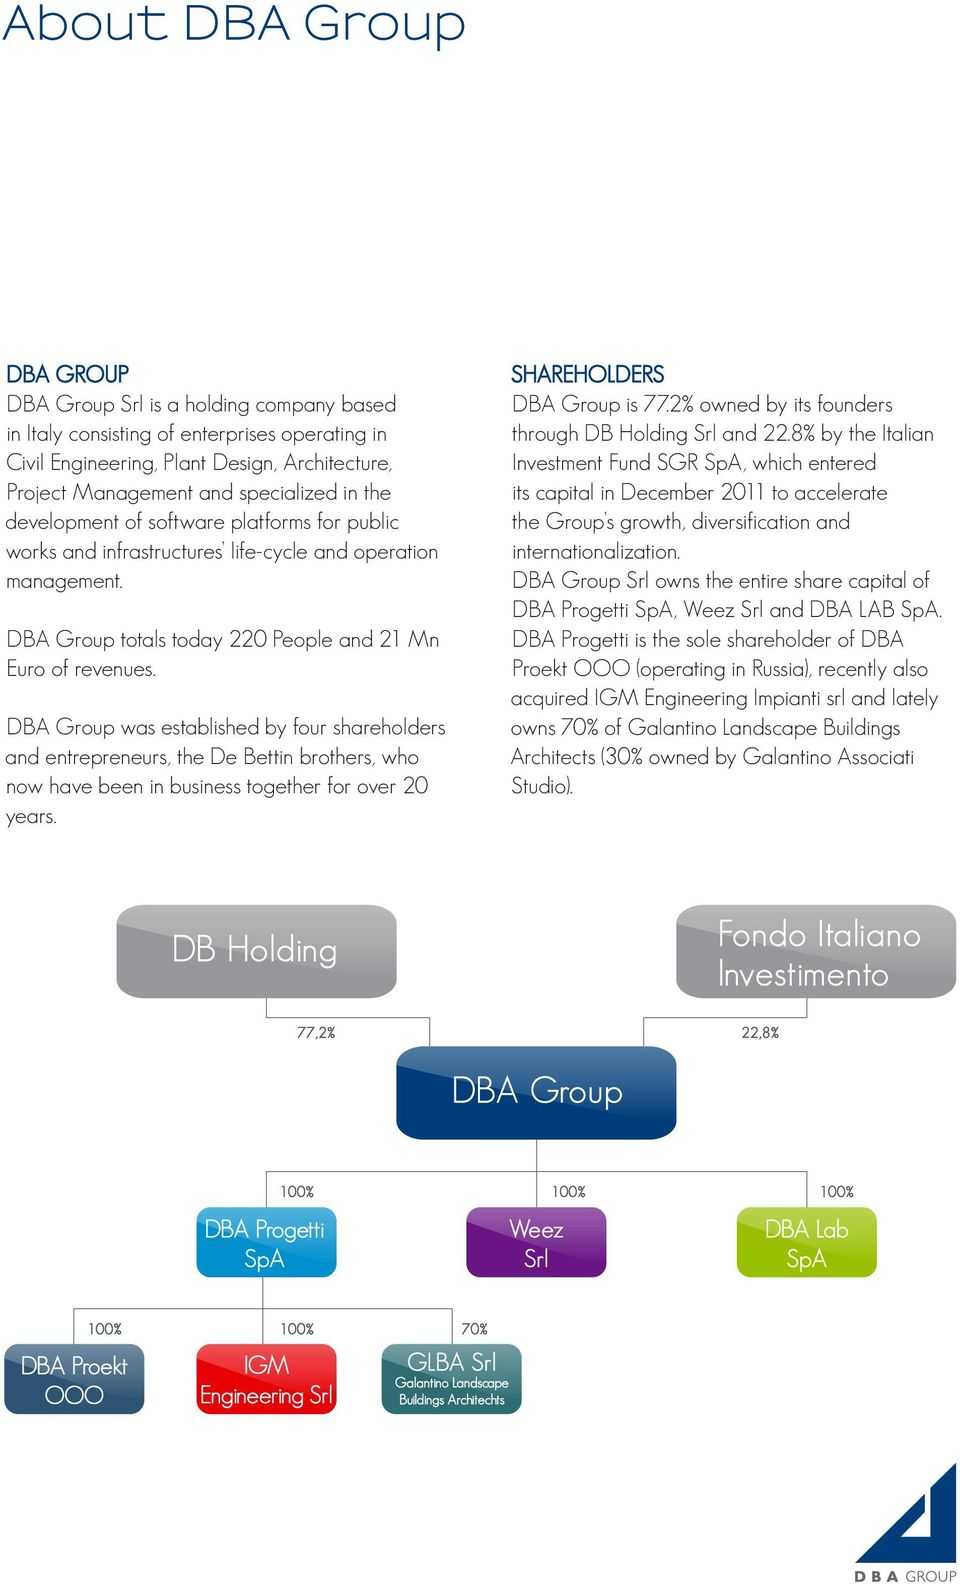 DBA Group was established by four shareholders and entrepreneurs, the De Bettin brothers, who now have been in business together for over 20 years. SHAREHOLDERS DBA Group is 77.